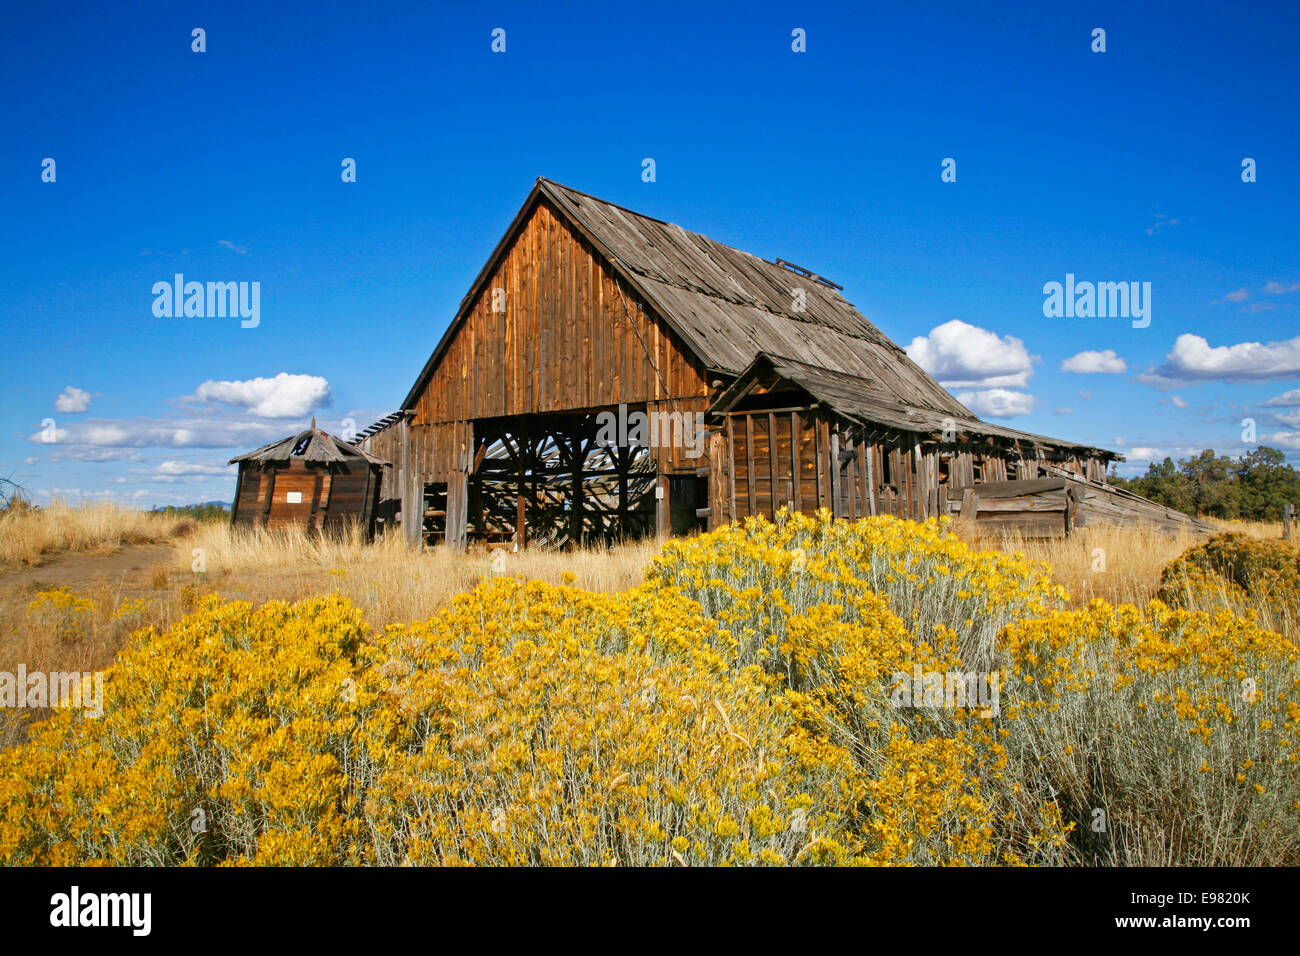 Old Cattle Barn Stock Photos Amp Old Cattle Barn Stock